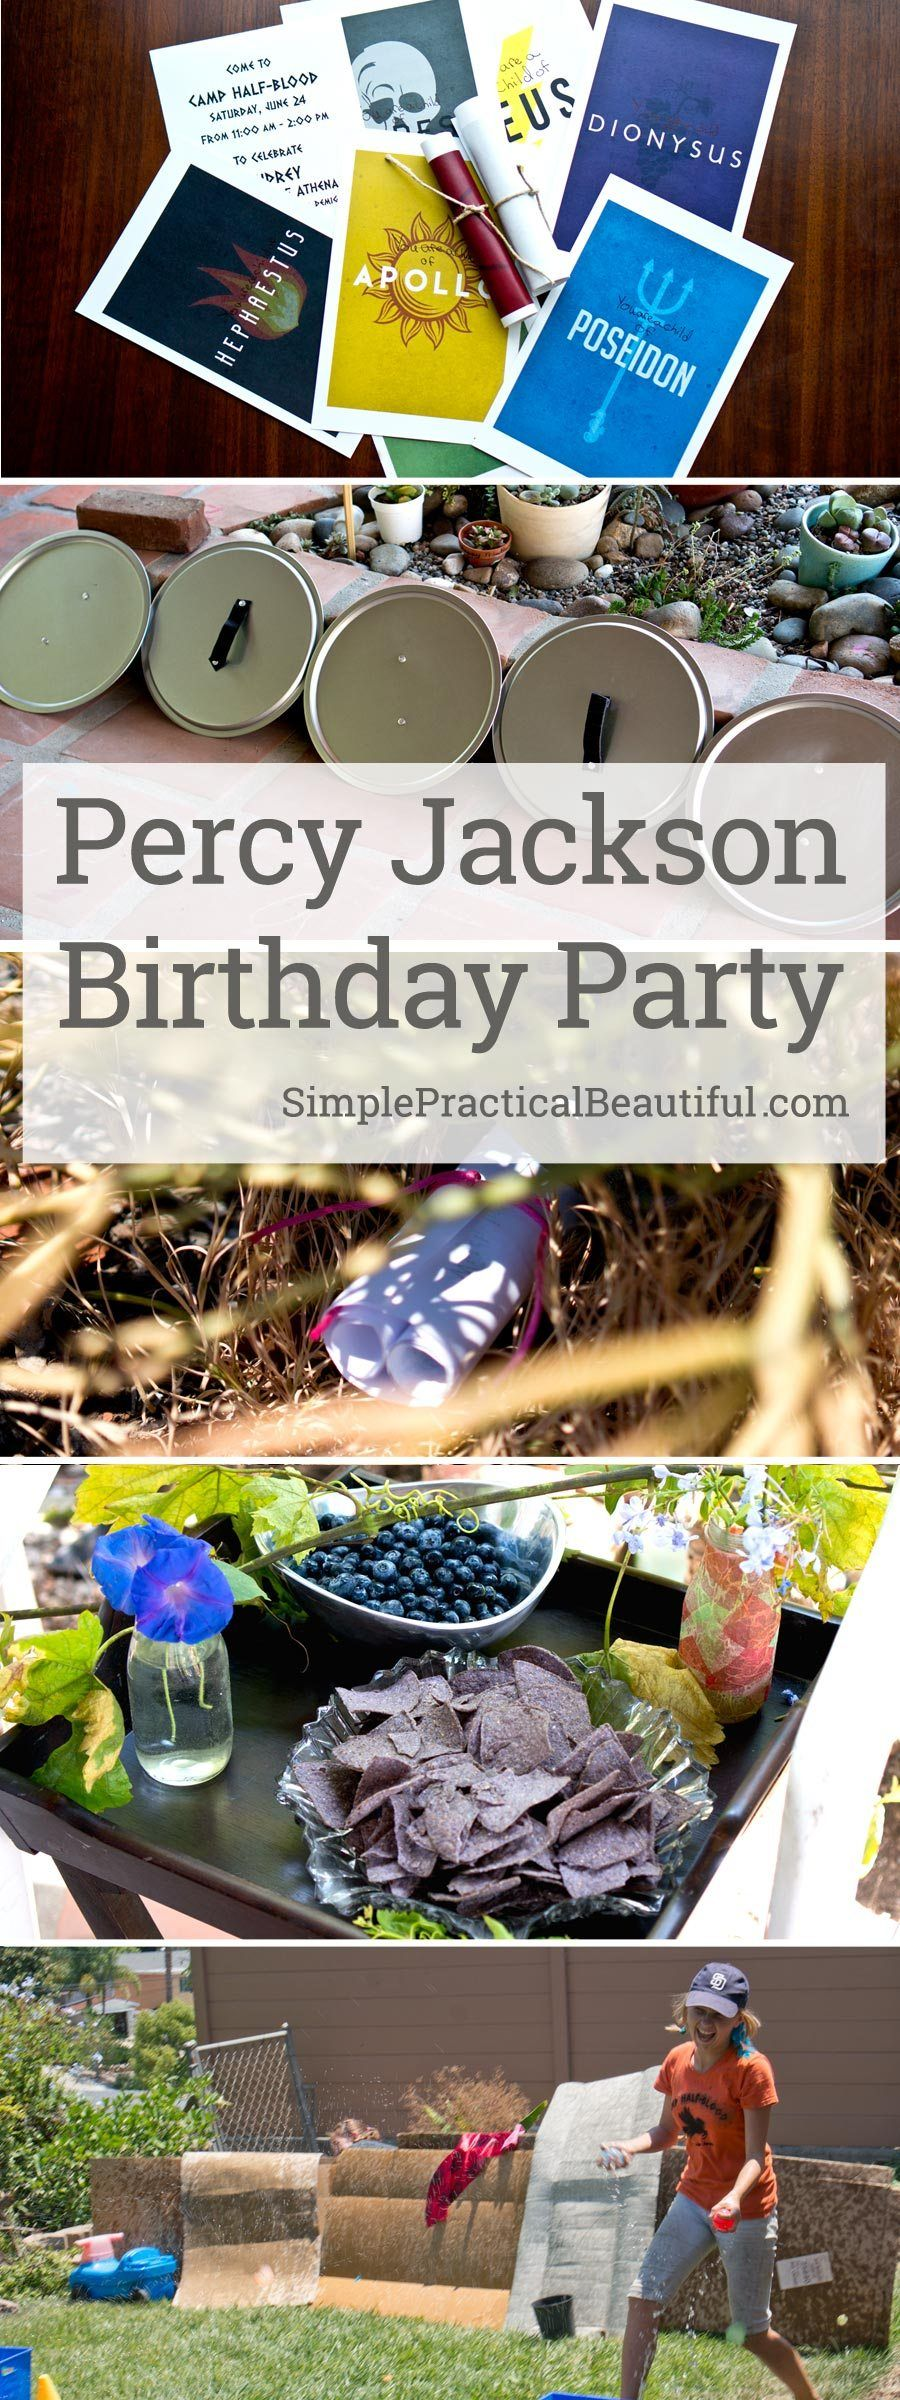 Percy Jackson Party images